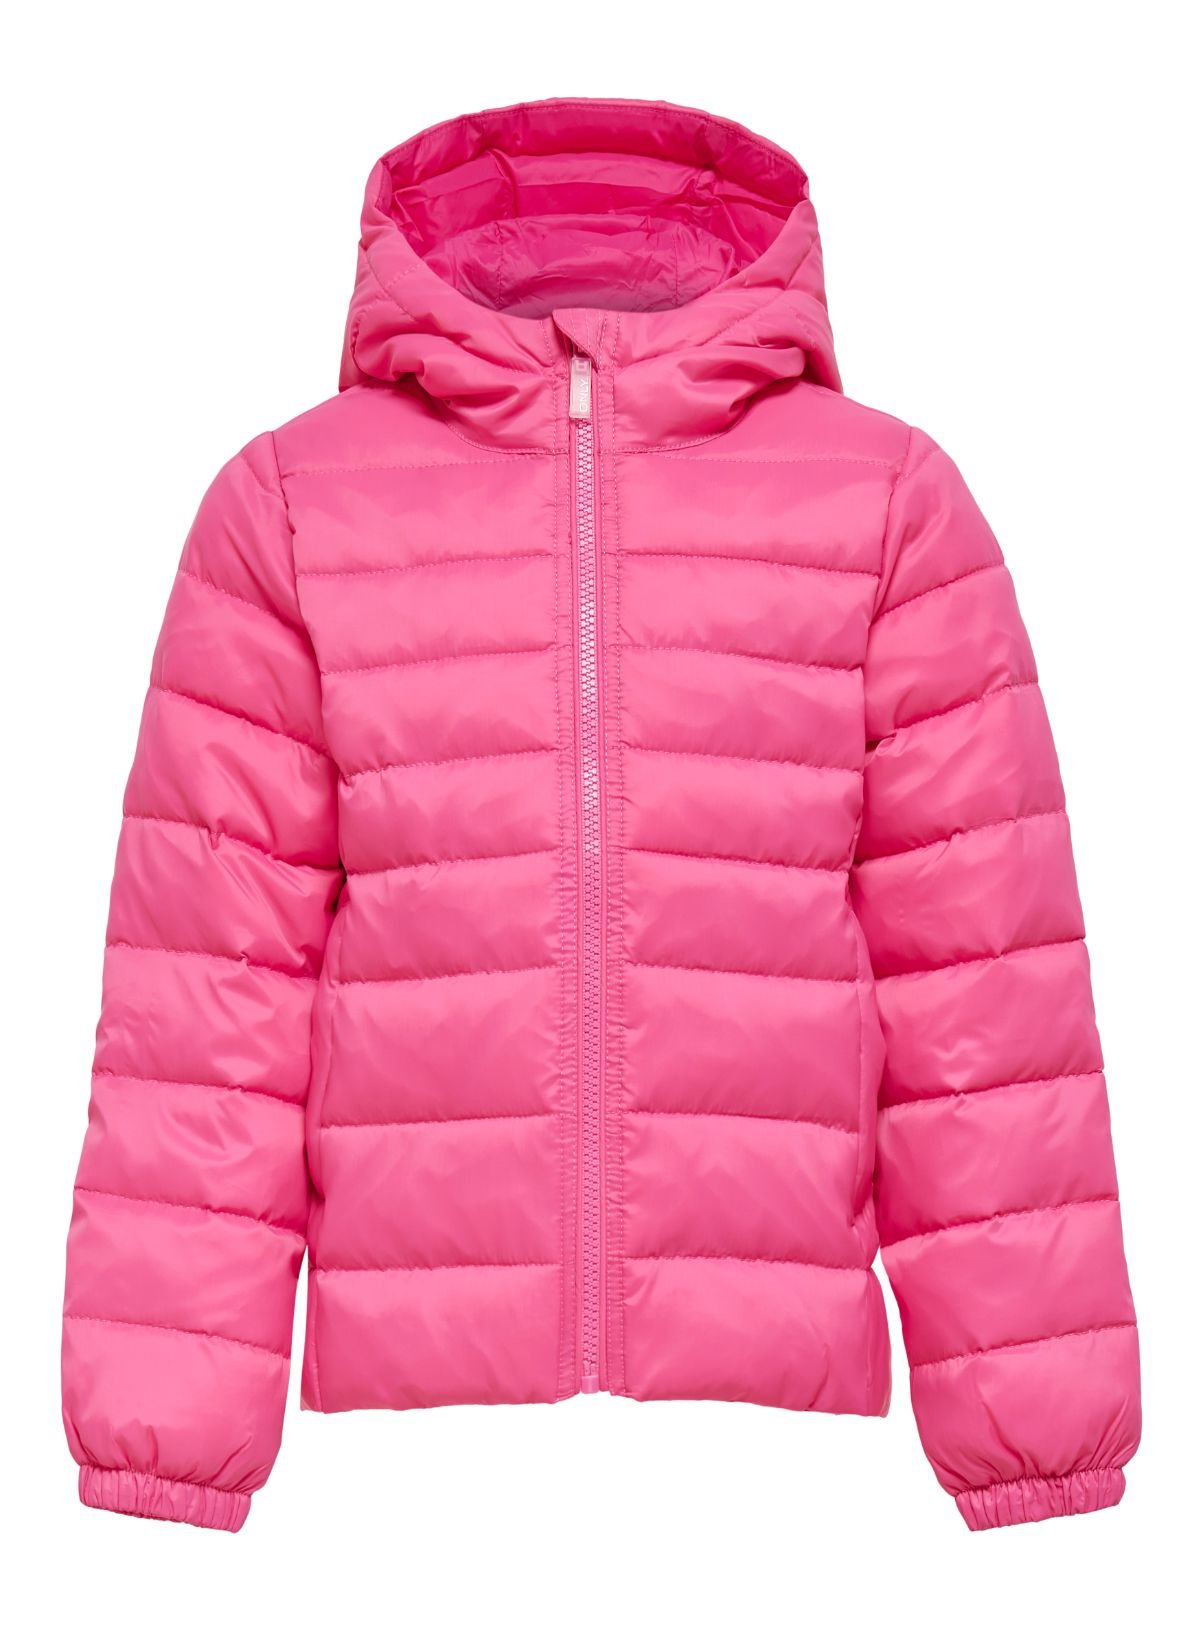 ONLY Kids Pink Hooded Puffer Jacket - 11 years